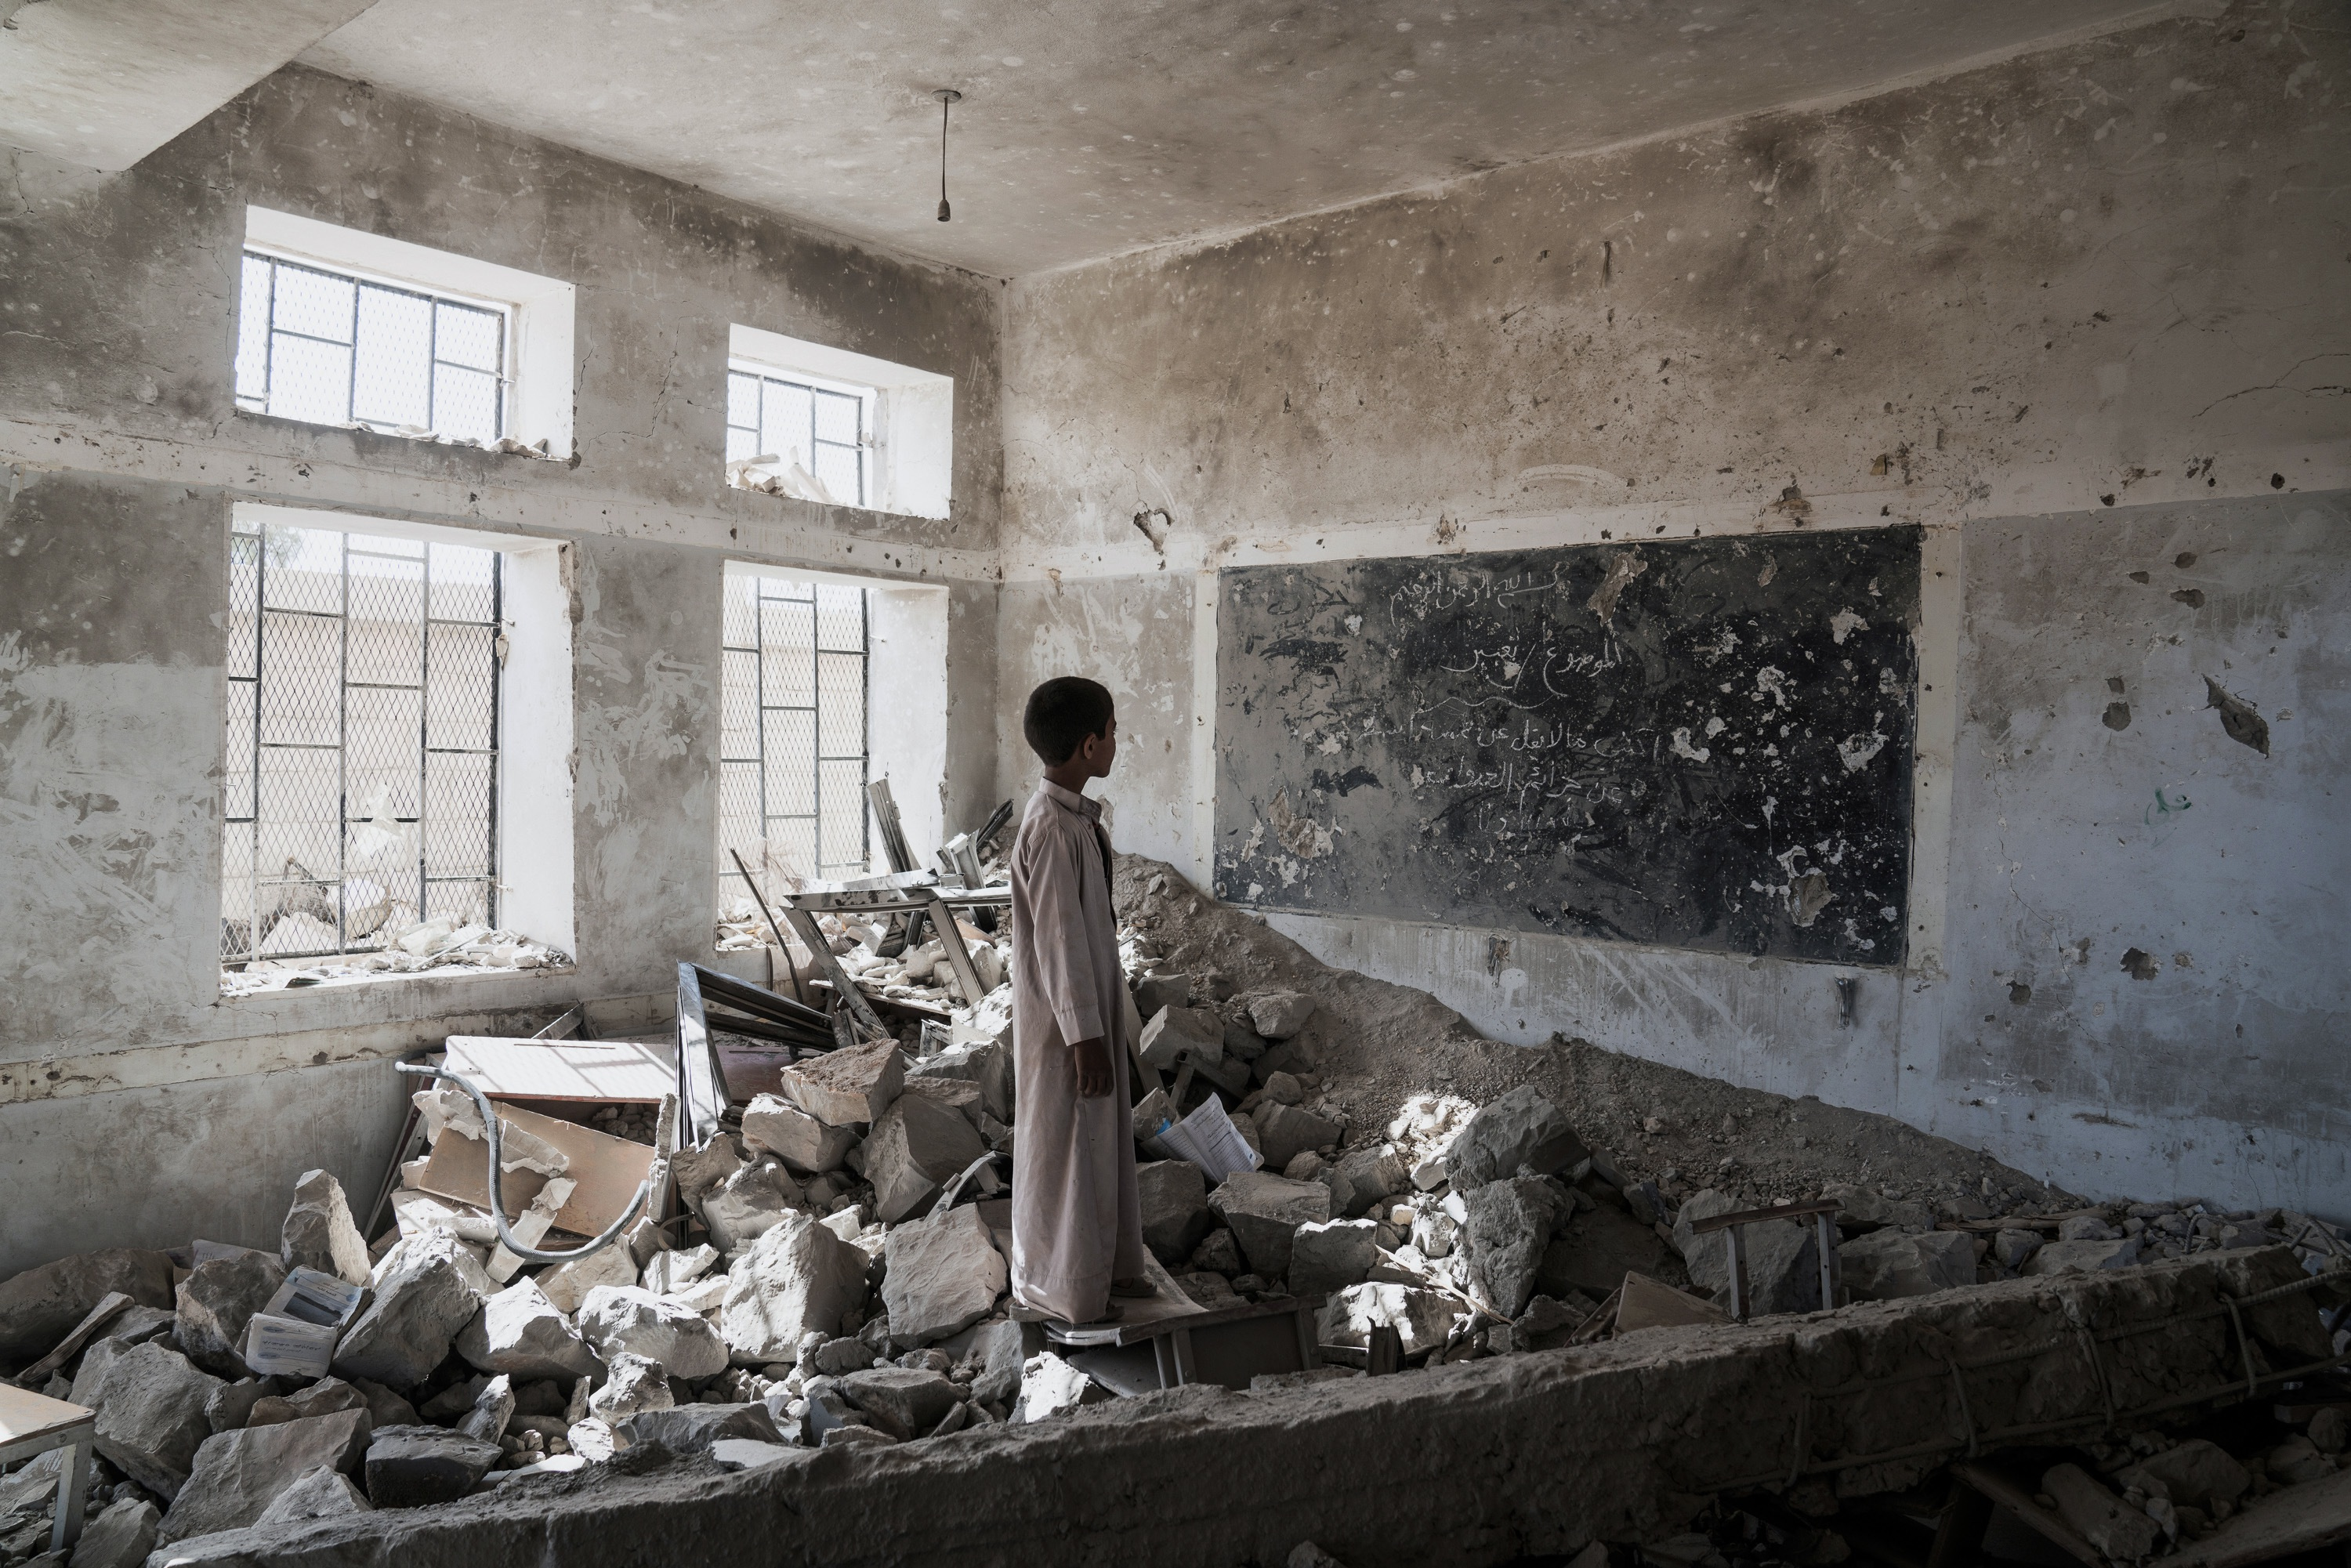 AAL OKAB SCHOOL , SAADA CITY, YEMEN - 24 APRIL 2017  A student at the Aal Okab school stands in the ruins of one of his former classrooms, which was destroyed during the conflict in June 2015. Students now attend lesson in UNICEF tents nearby.